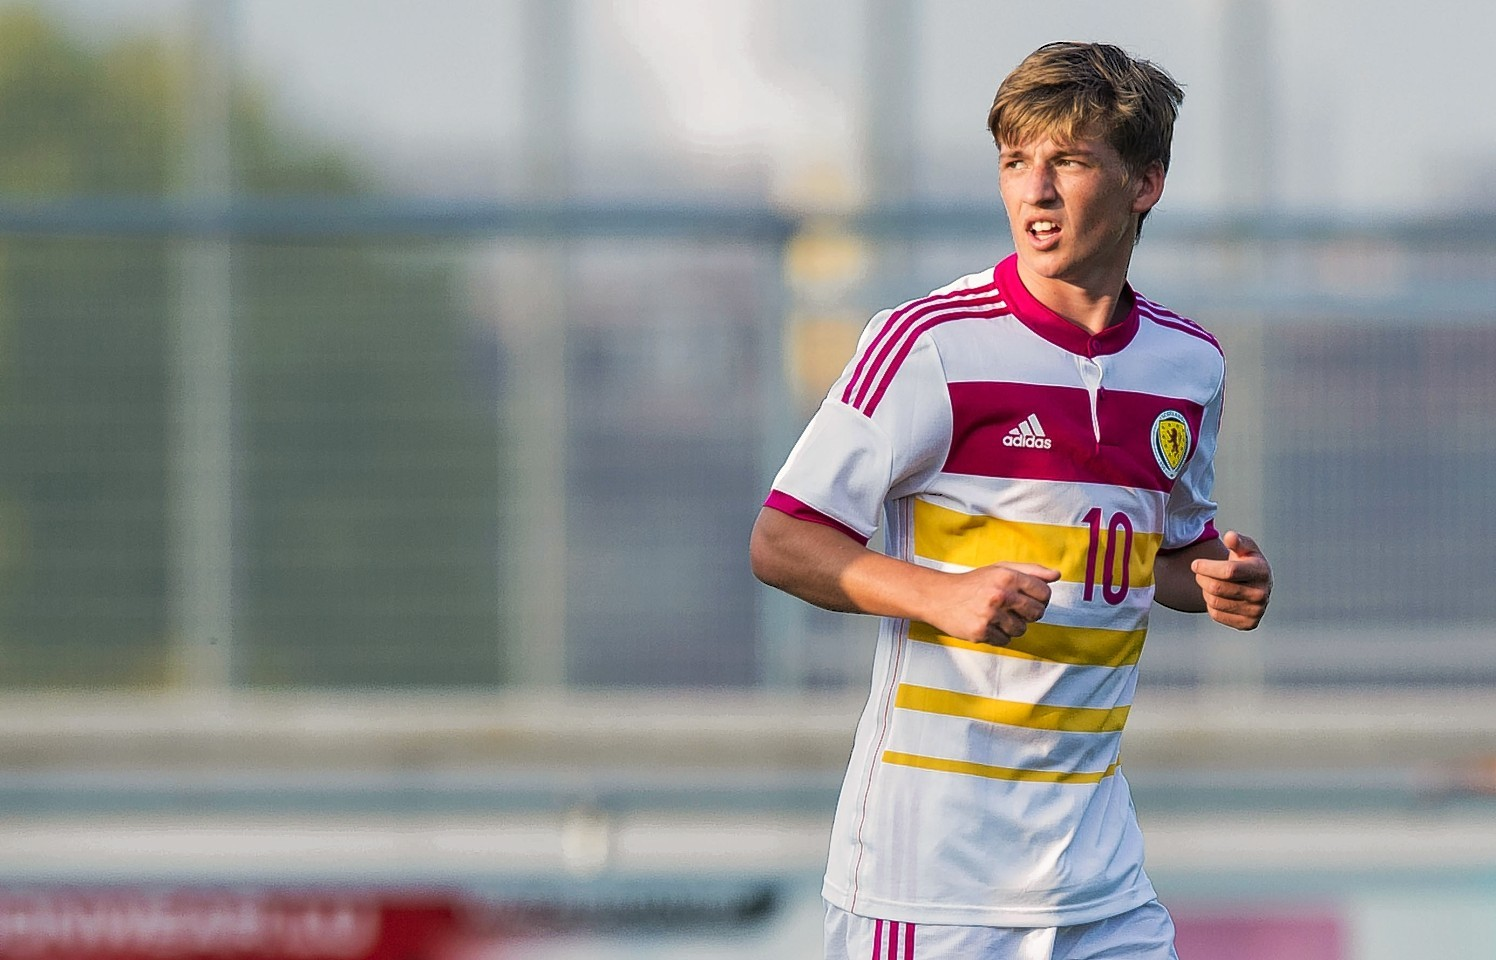 Ryan Gauld was the most high profile Scot to move abroad this summer after joining Sporting Lisbon from Dundee United